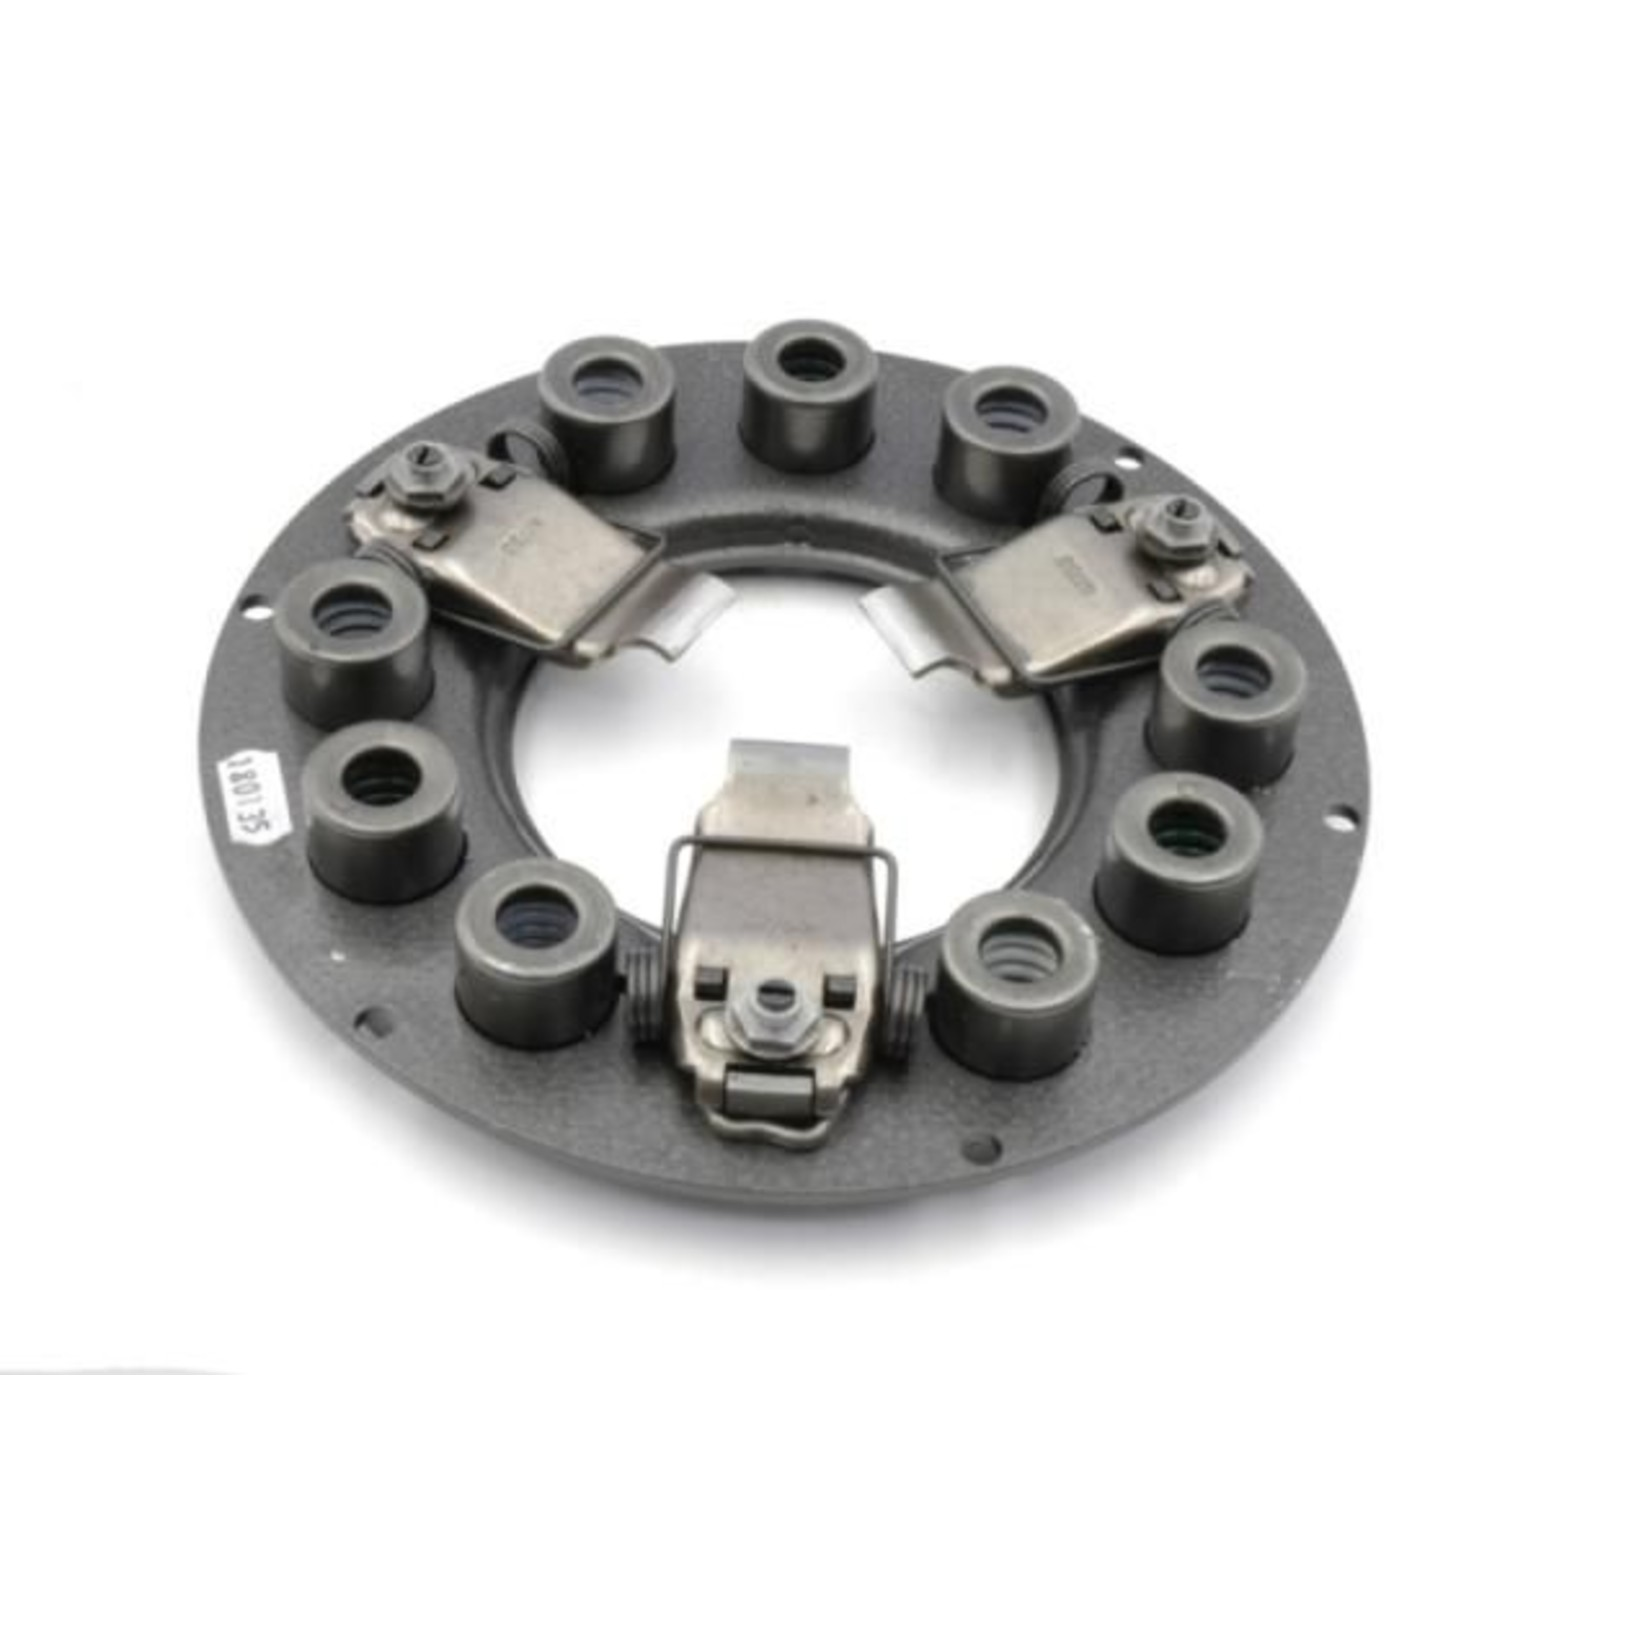 Clutch mechanism reconditioned -65 Nr Org: D3120